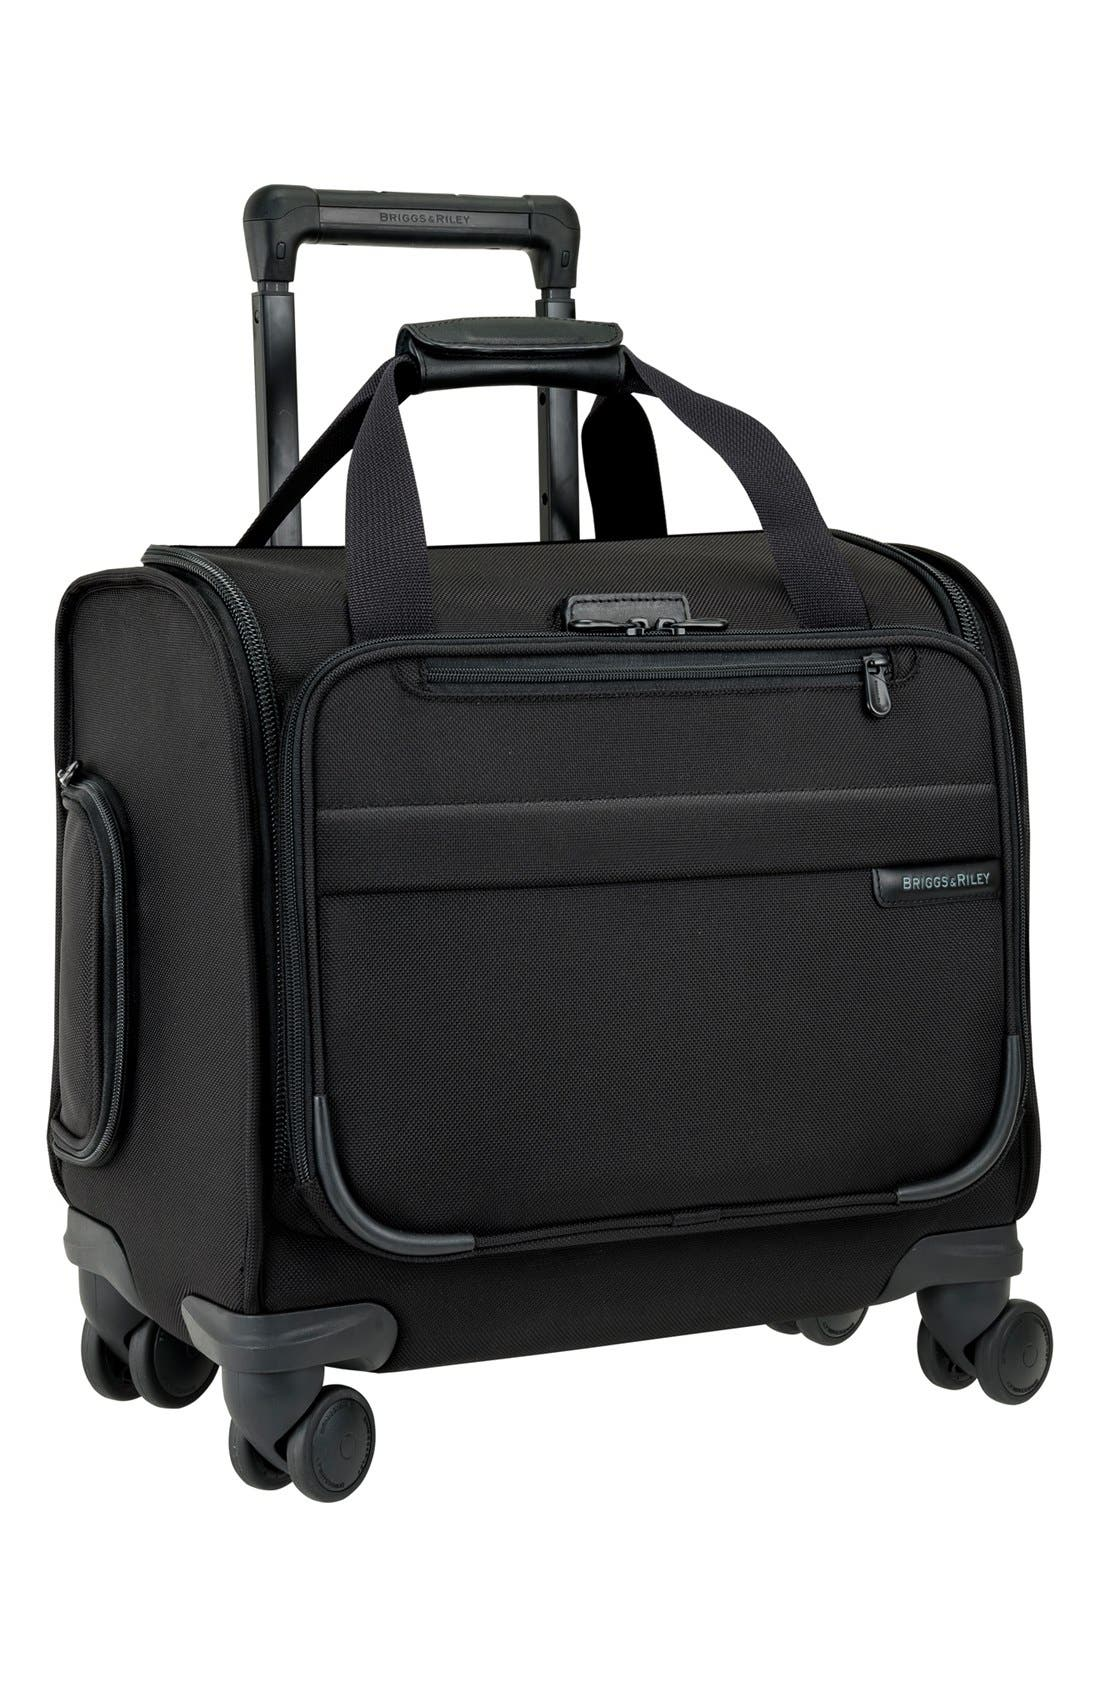 BRIGGS & RILEY, 'Cabin' Spinner Carry-On, Main thumbnail 1, color, BLACK